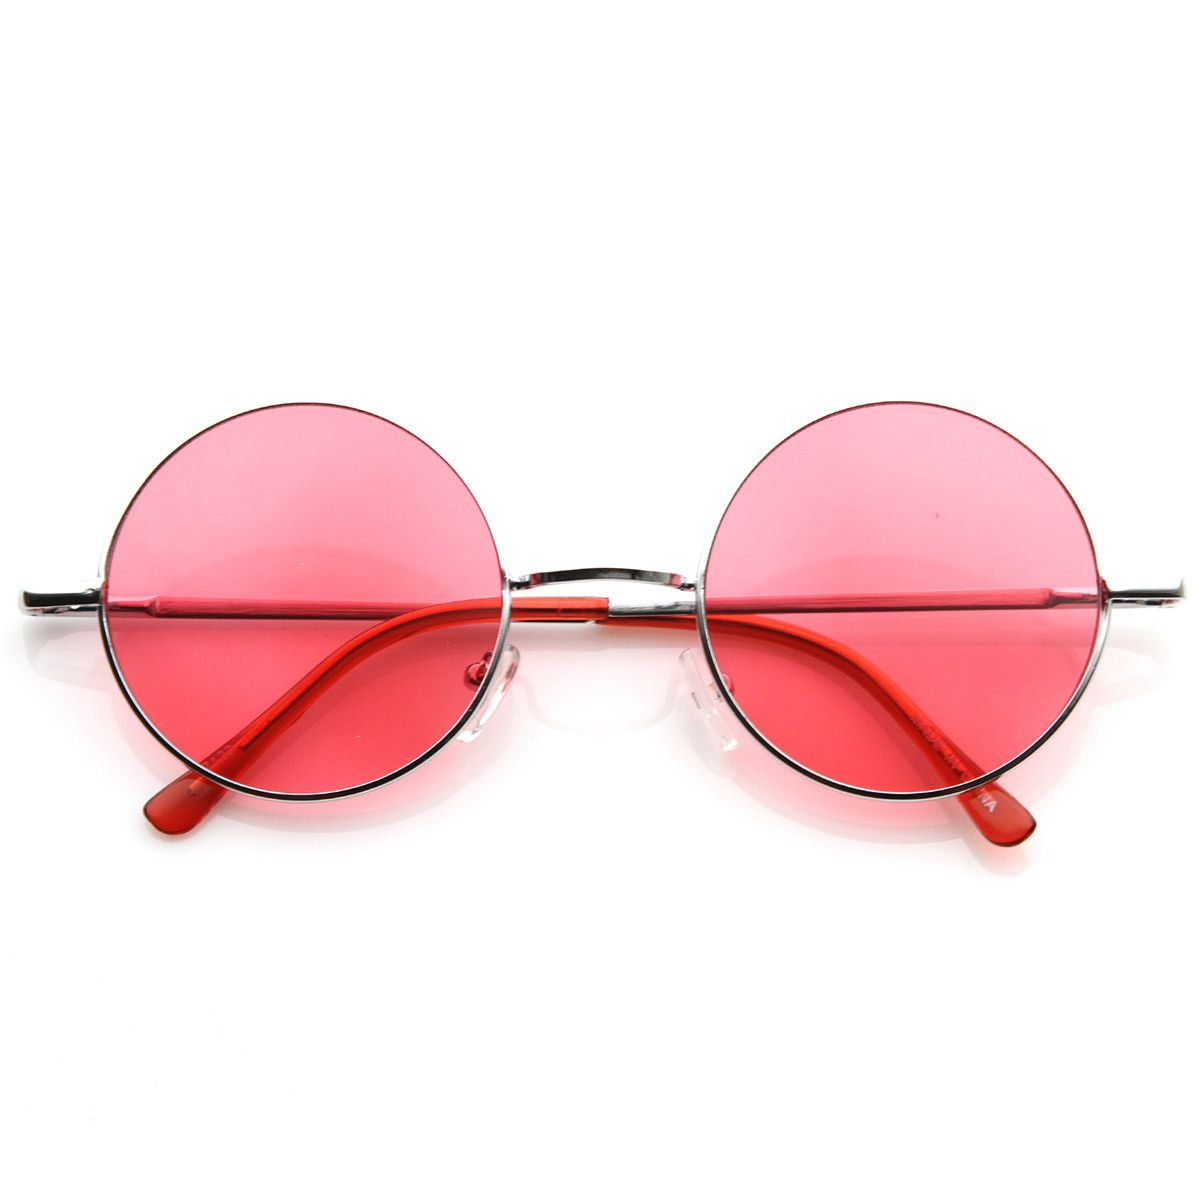 These classic round metal sunglasses are inspired by the legendary John Lennon…